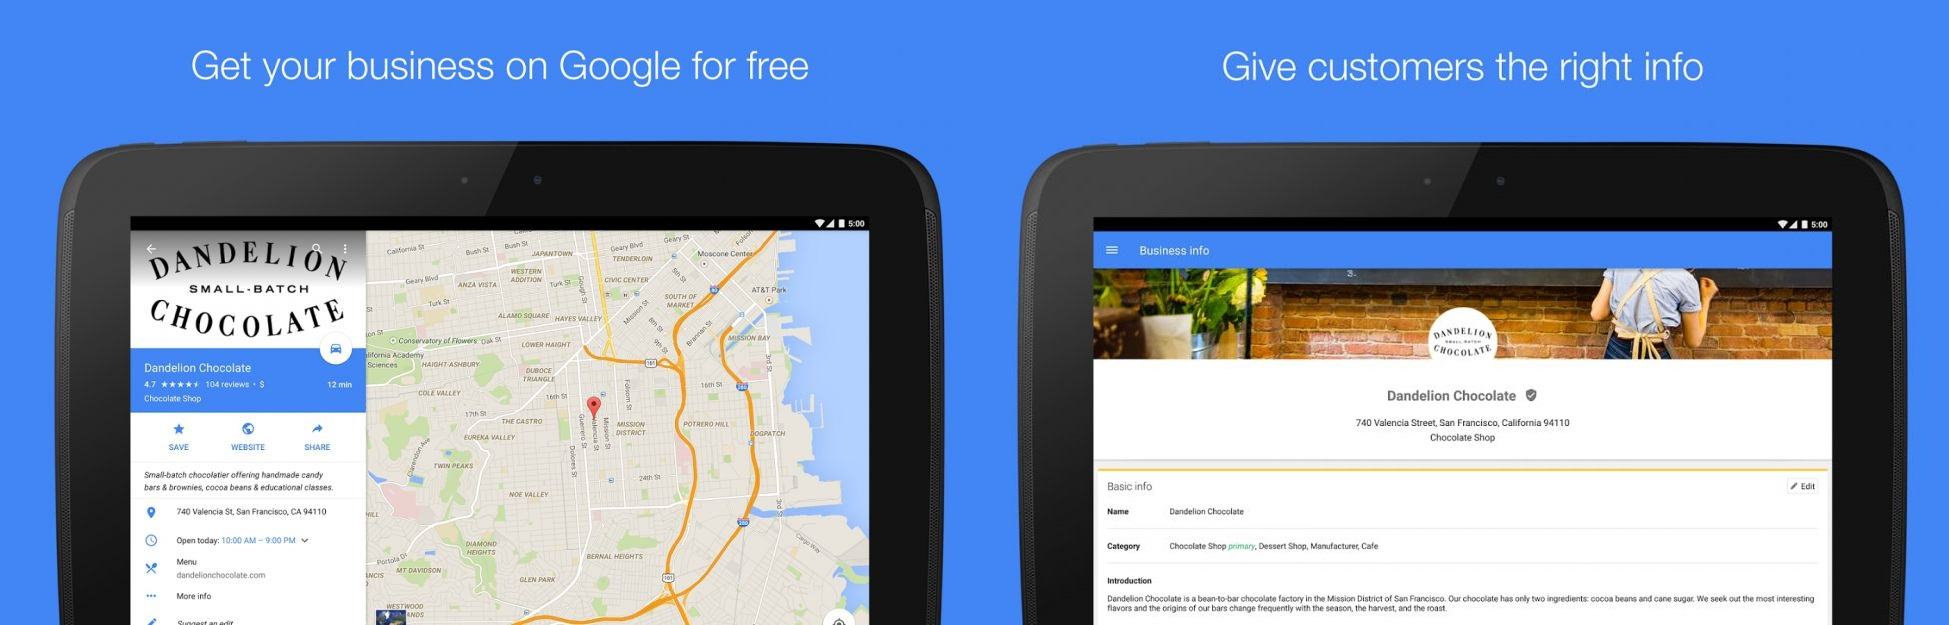 Google My Business - Android